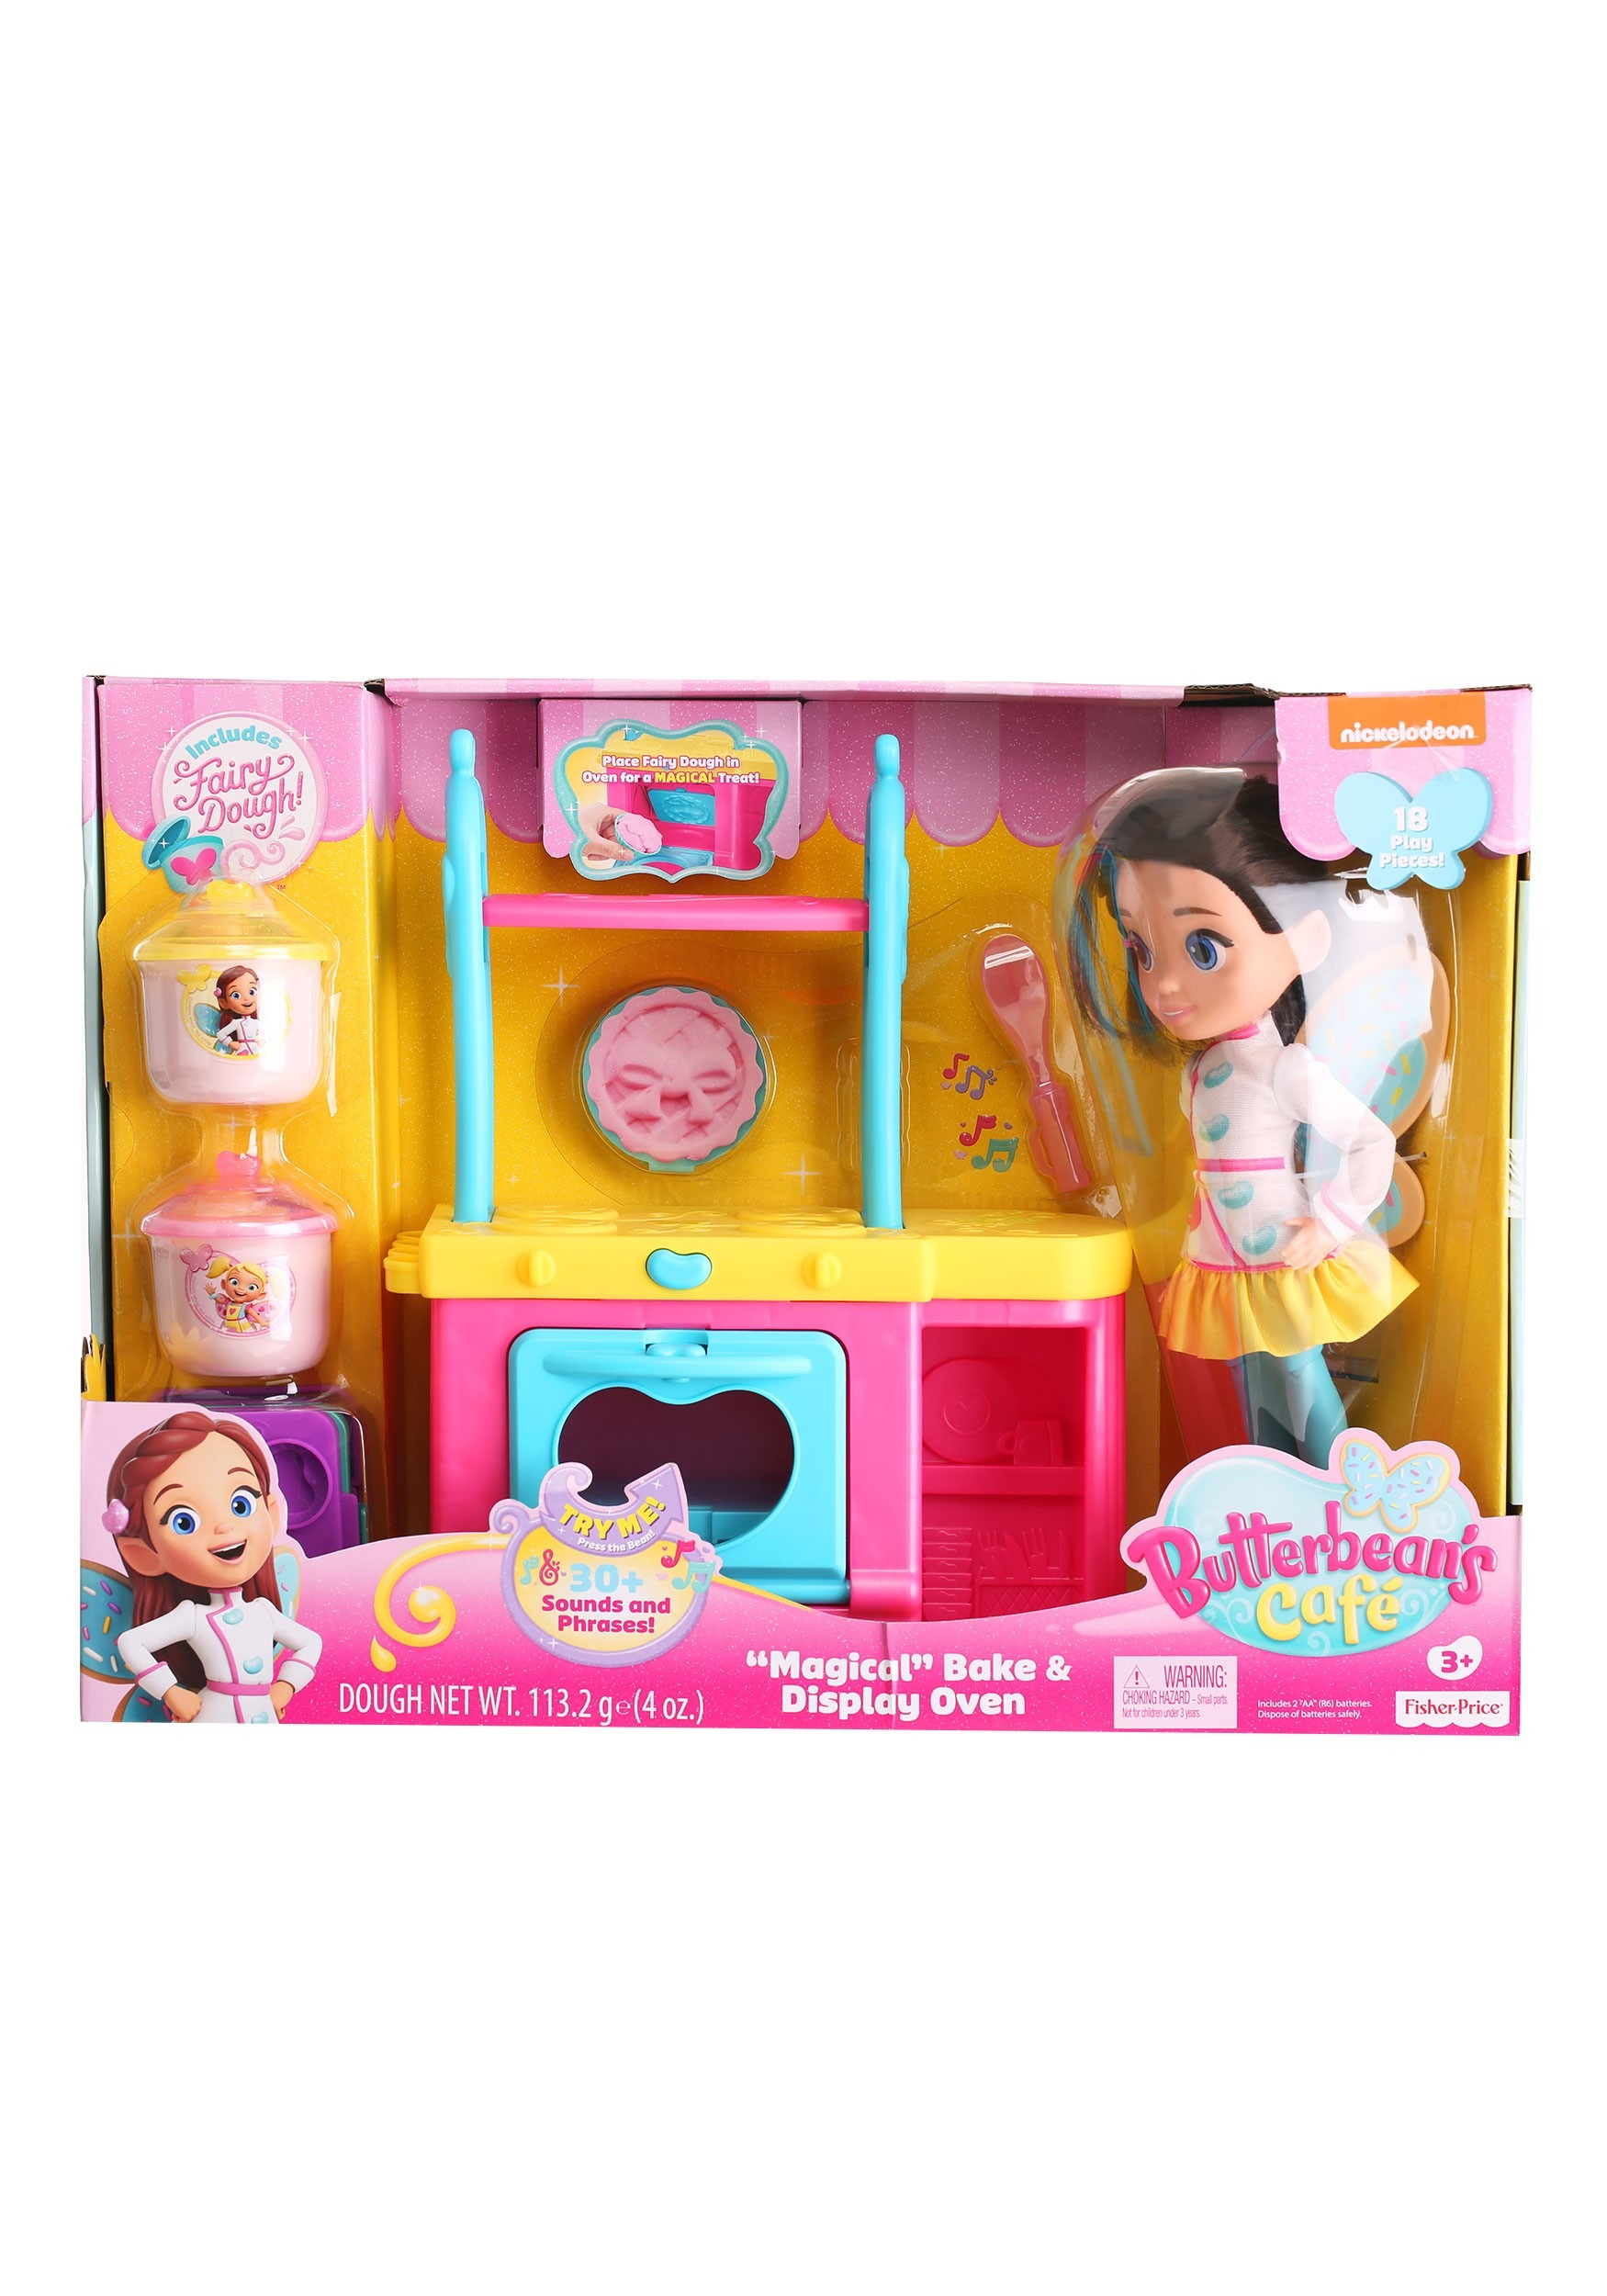 Butterbean's Cafe Magic Dough Oven & Doll for Girl's